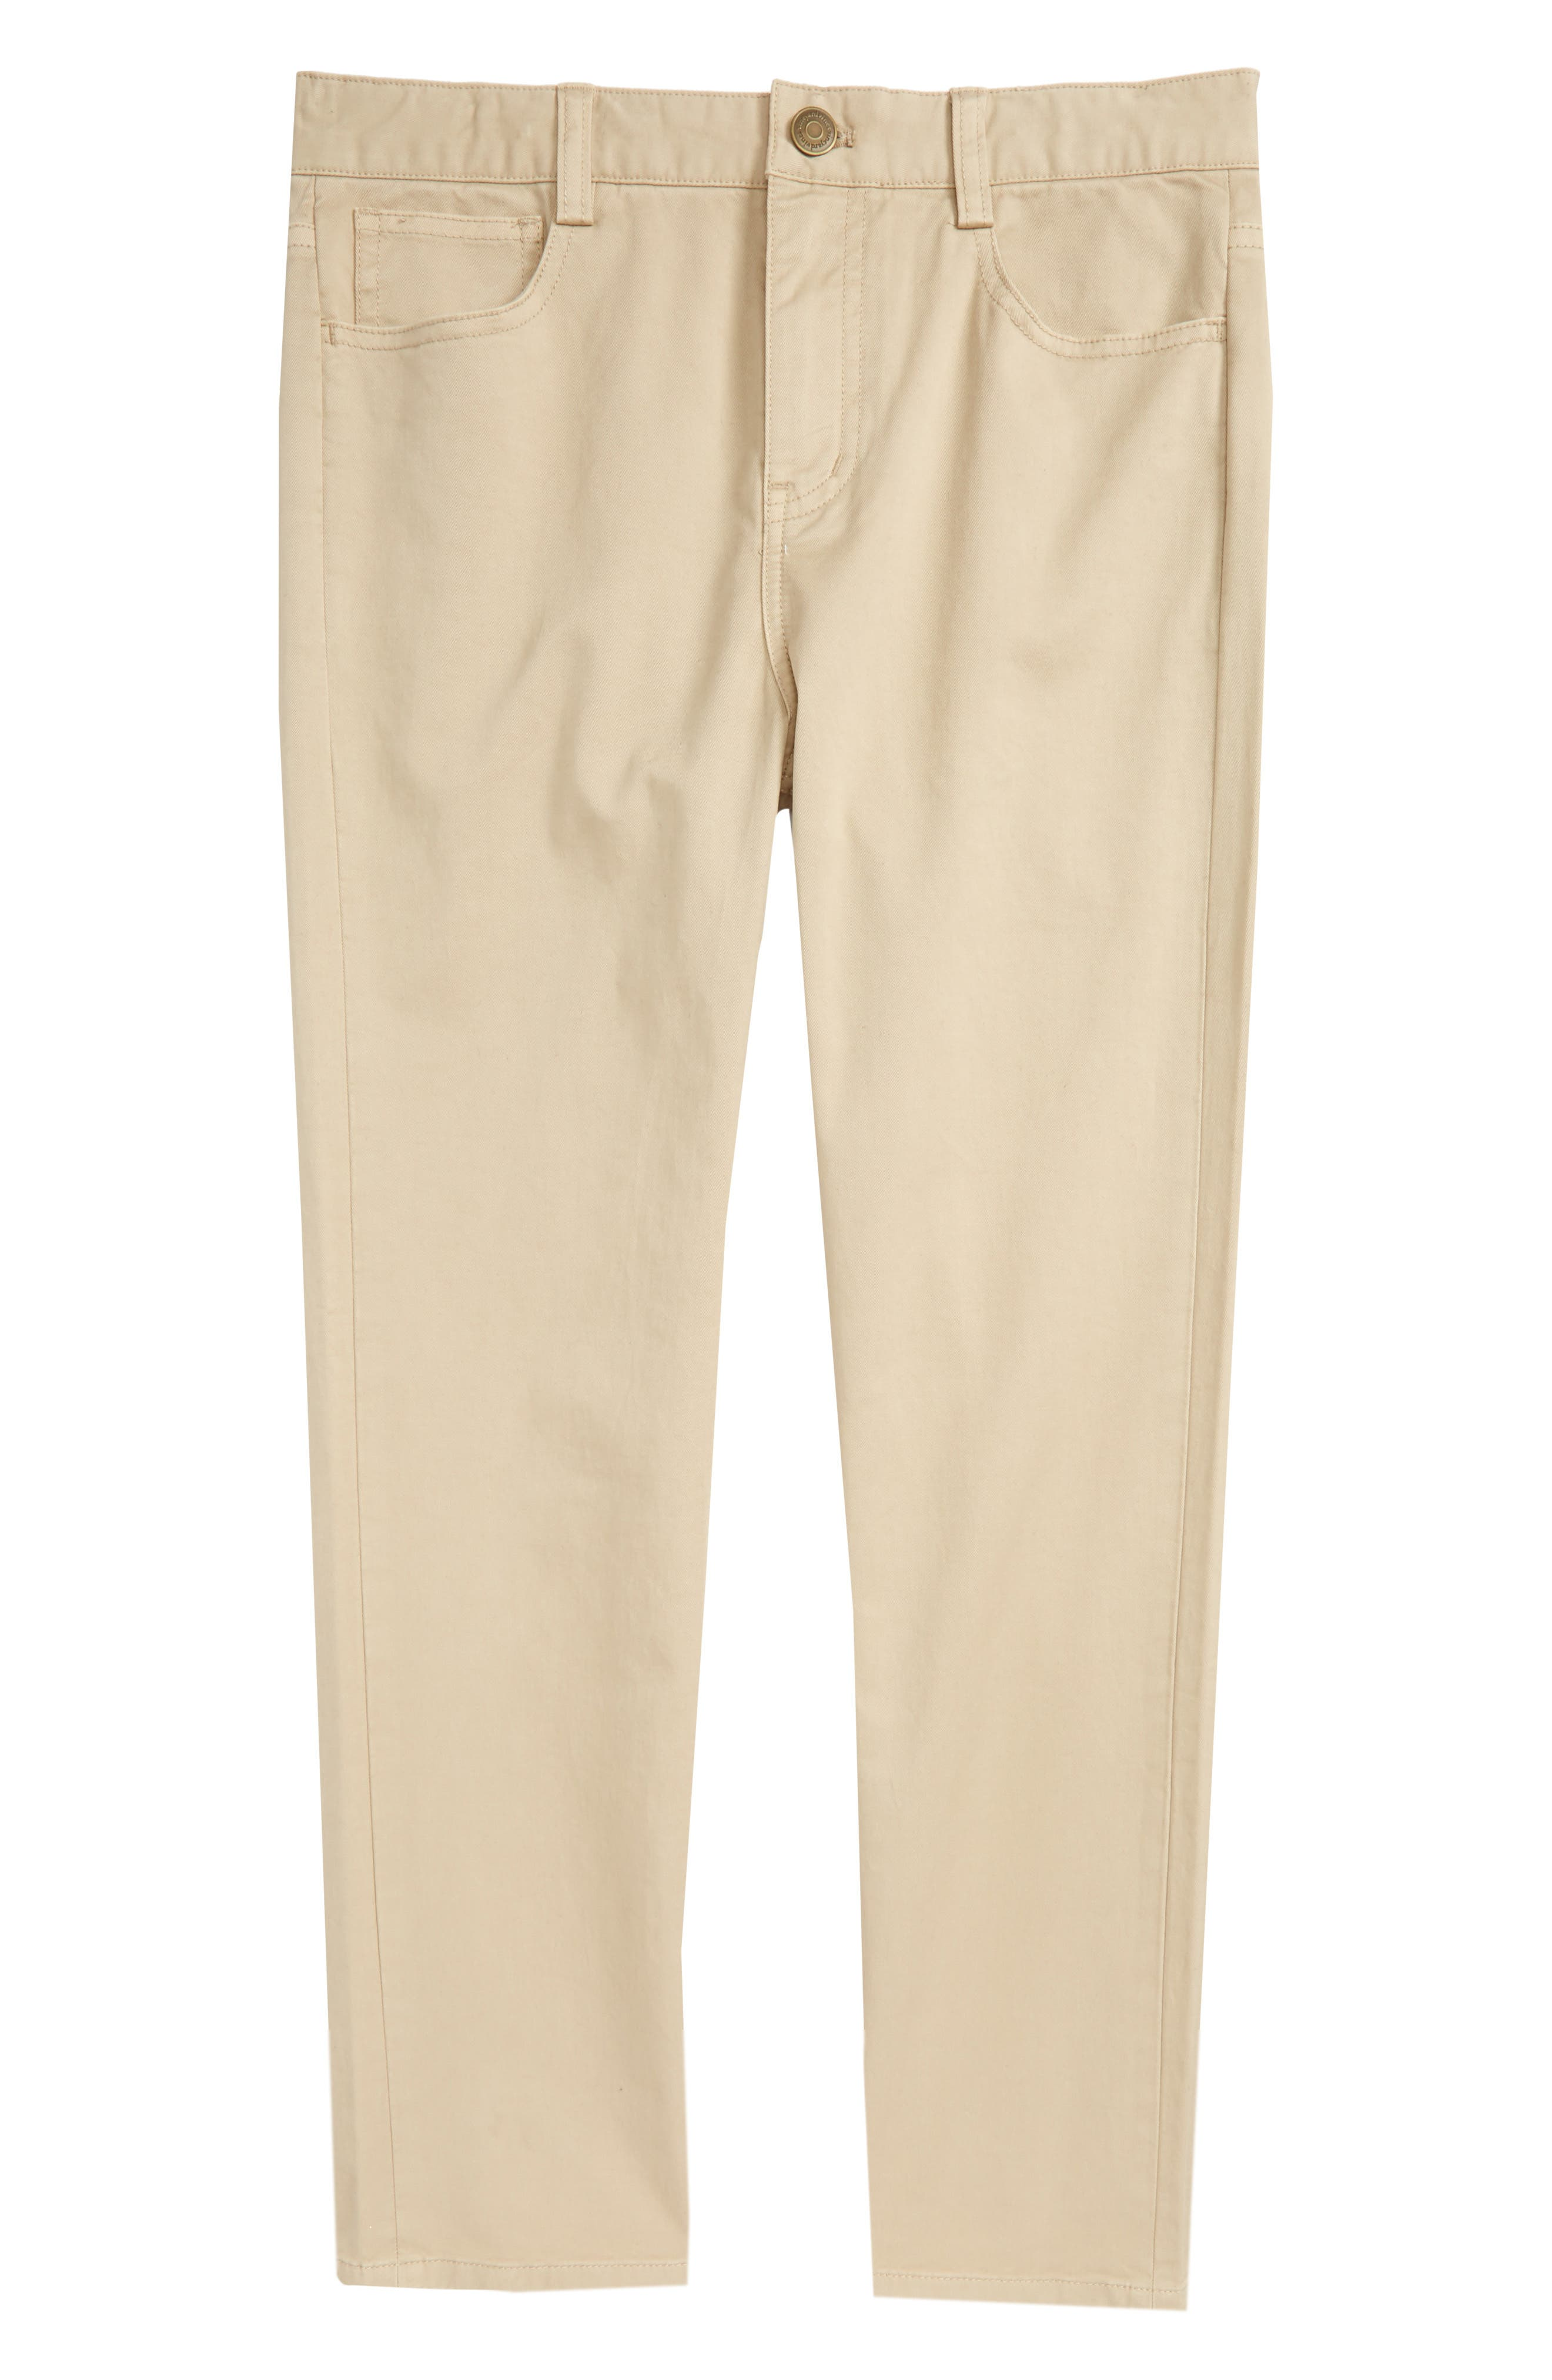 Stretch Twill Pants,                             Main thumbnail 1, color,